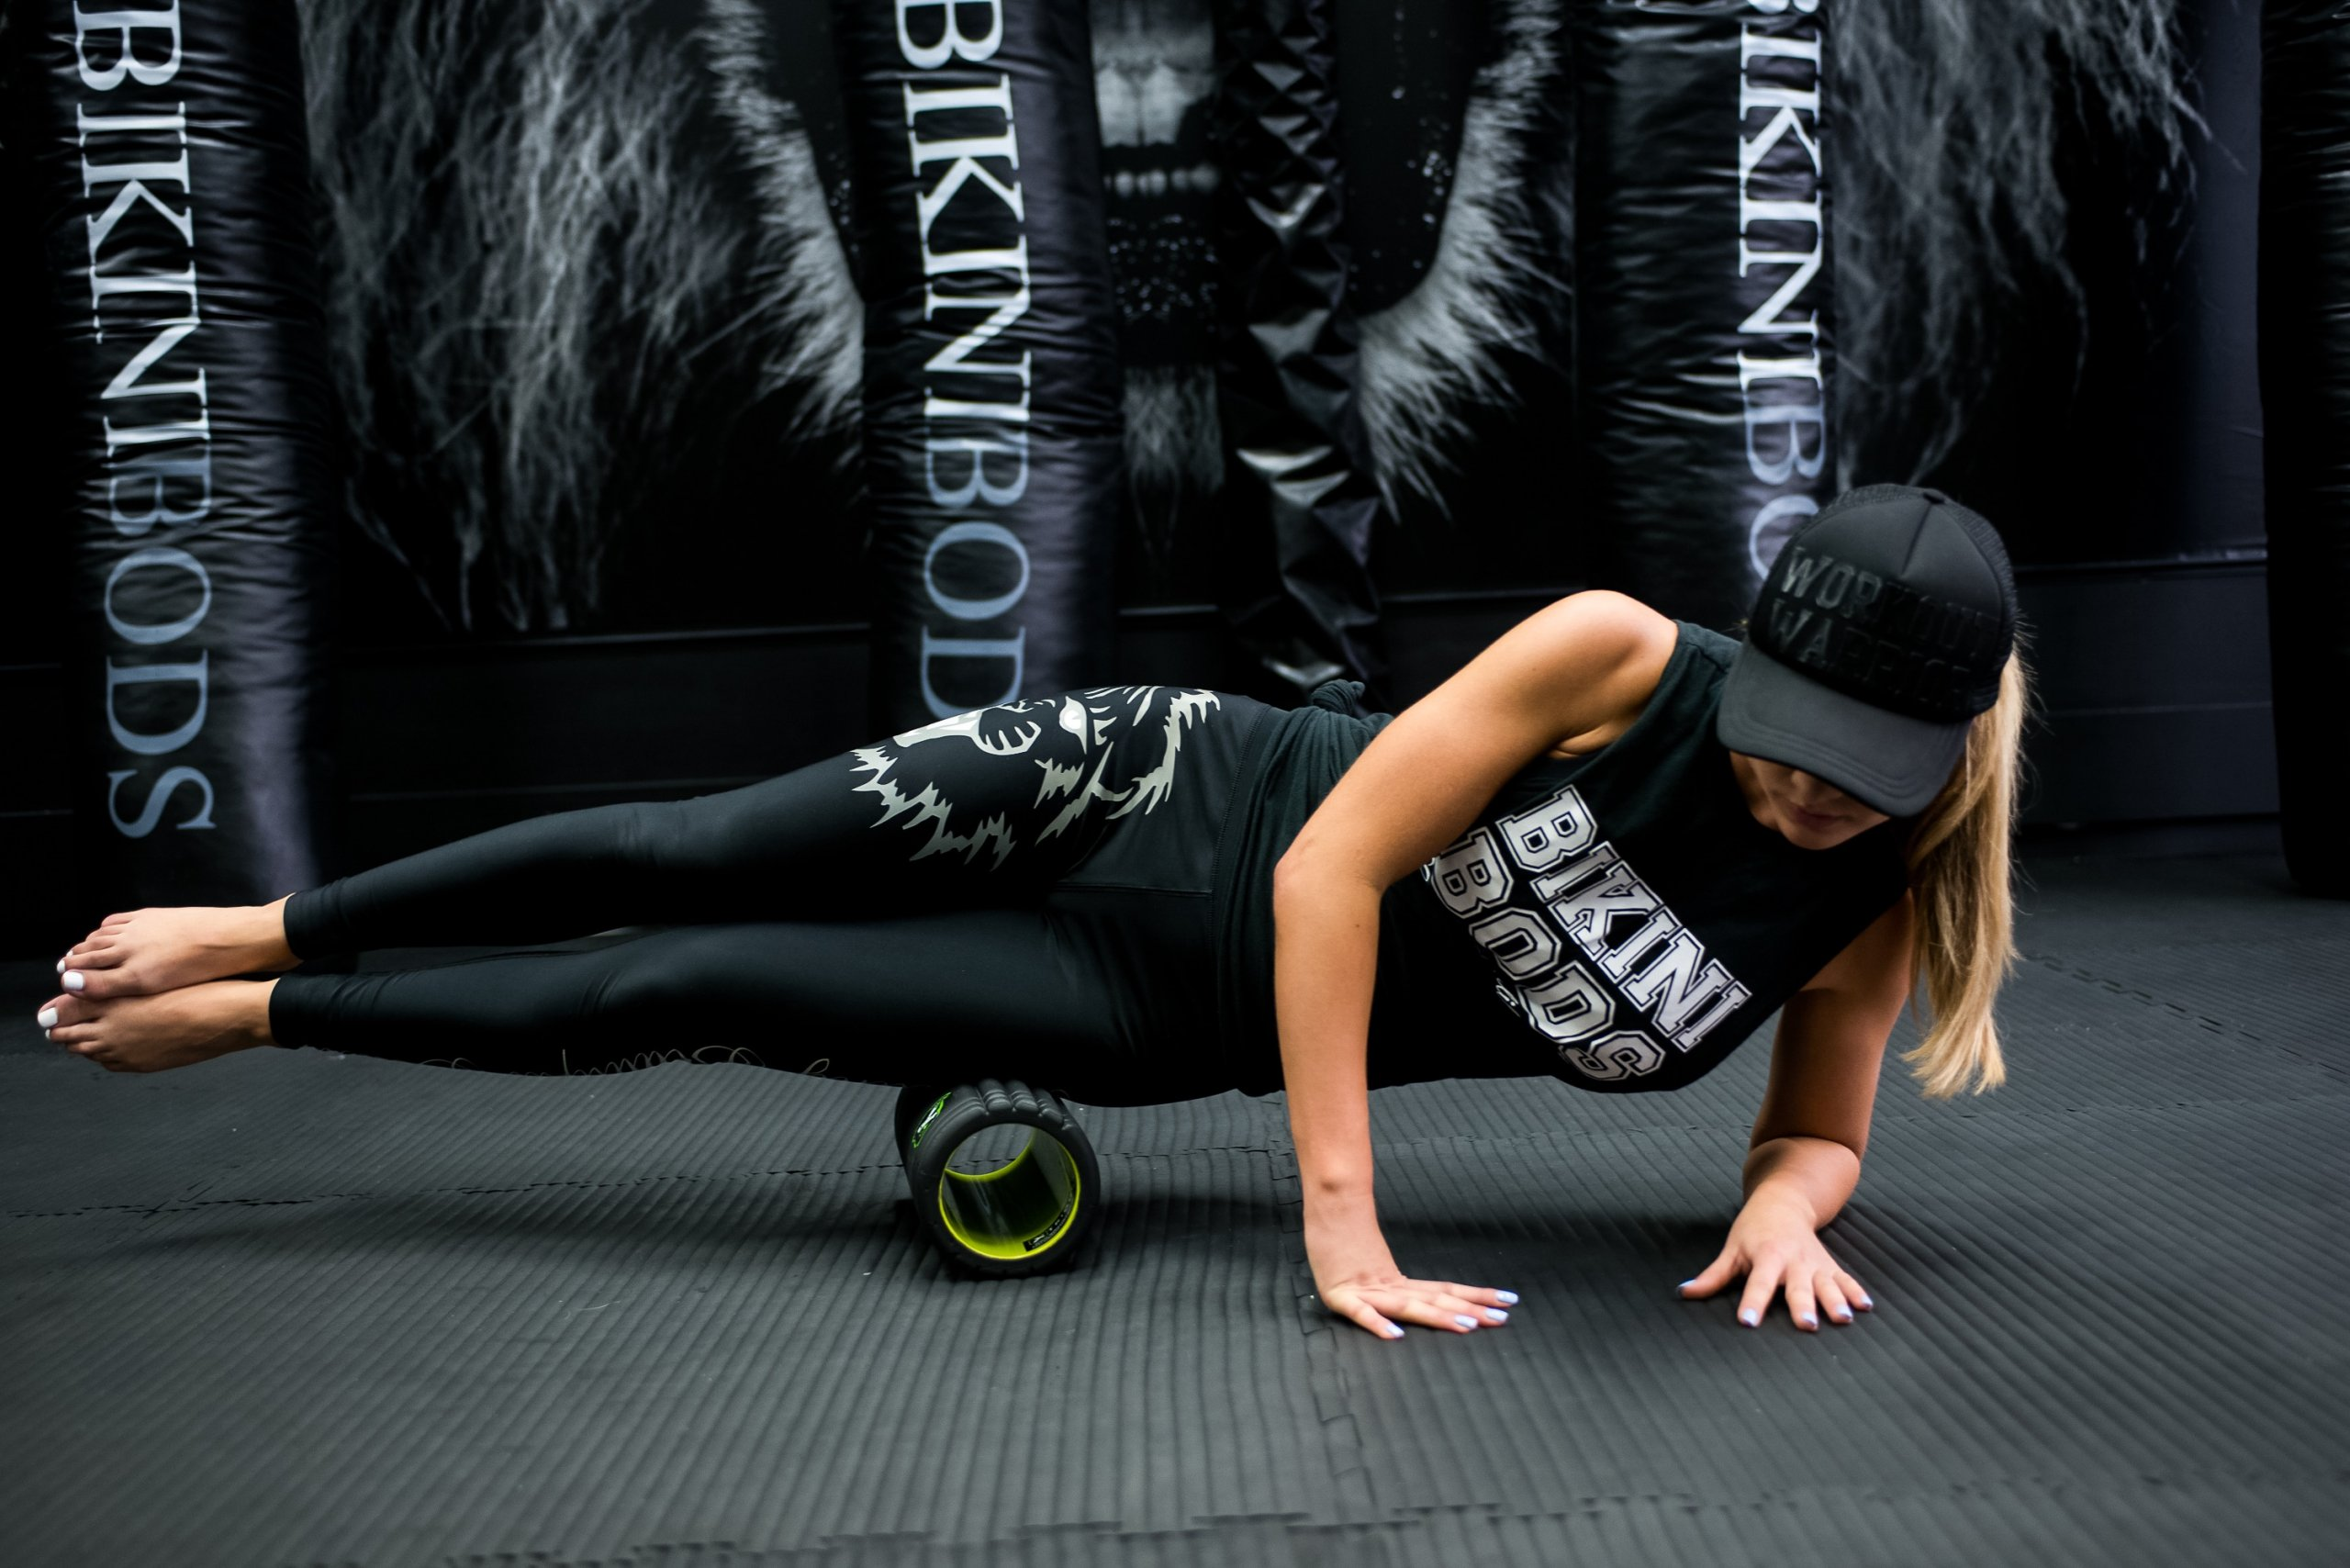 HOW TO PREVENT KNEE, BACK, HIP & UPPER BODY INJURIES WITH FOAM ROLLING!